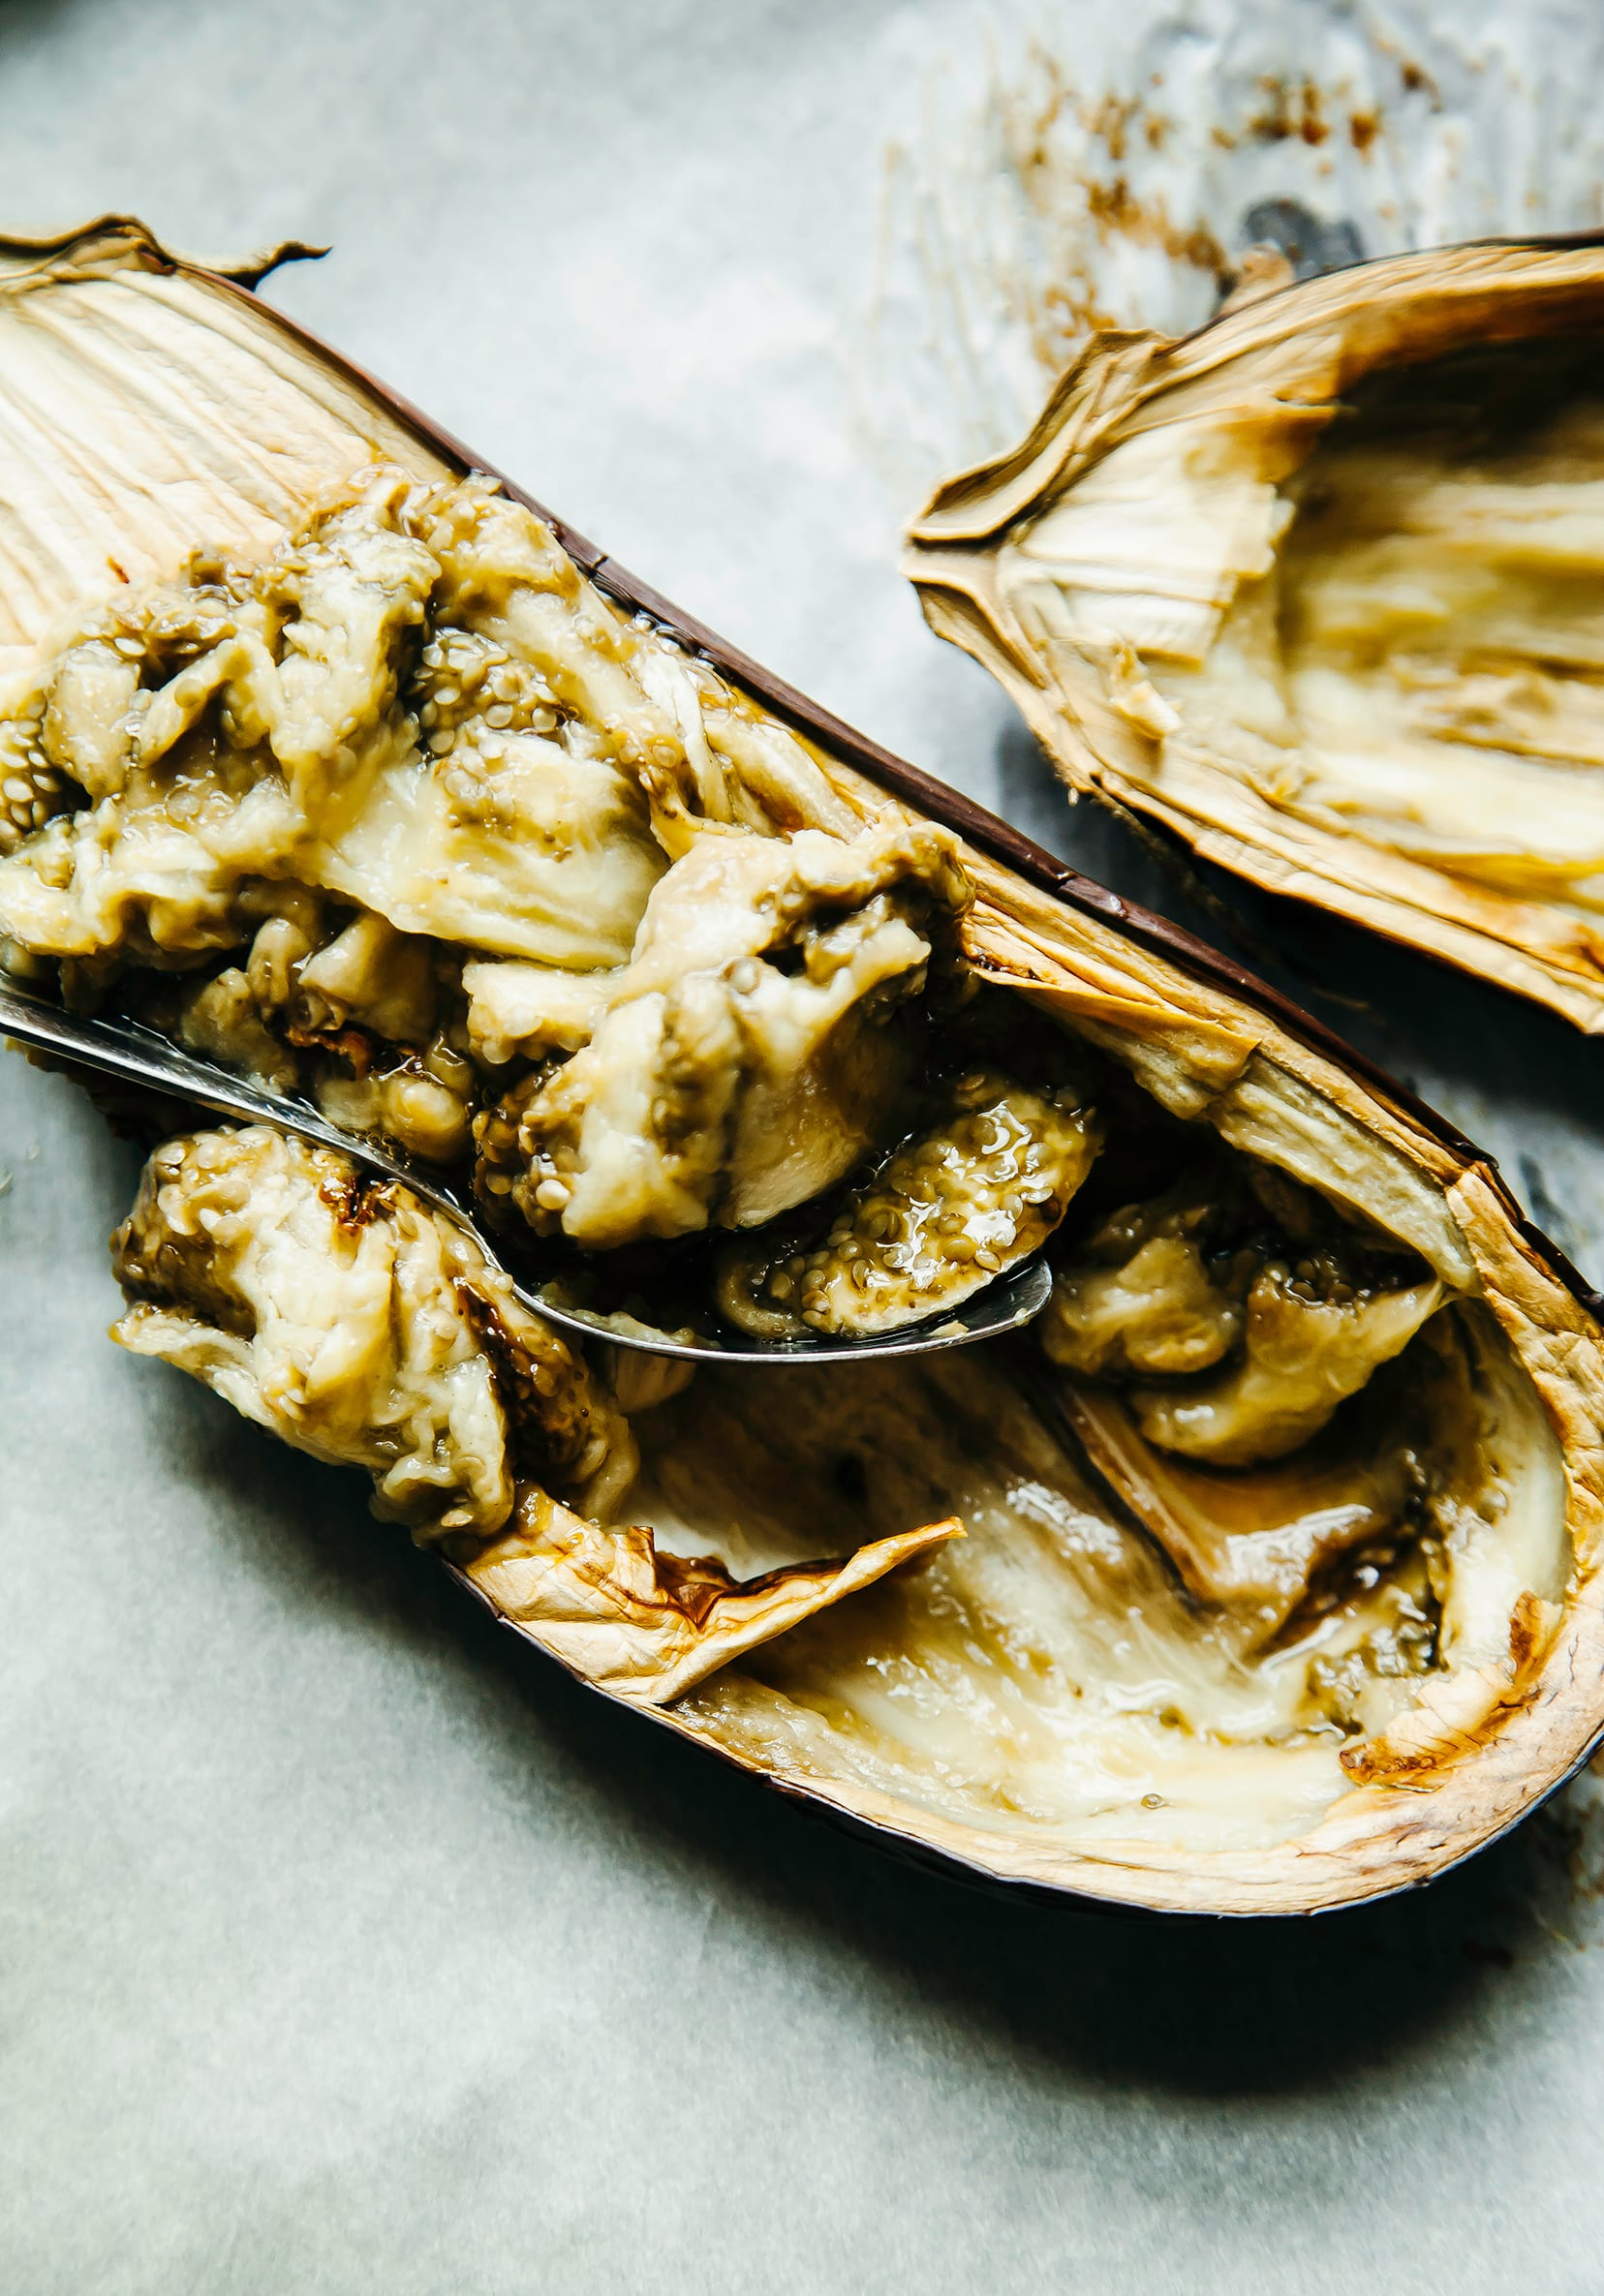 Image shows roasted eggplant halves being scooped out by a spoon.